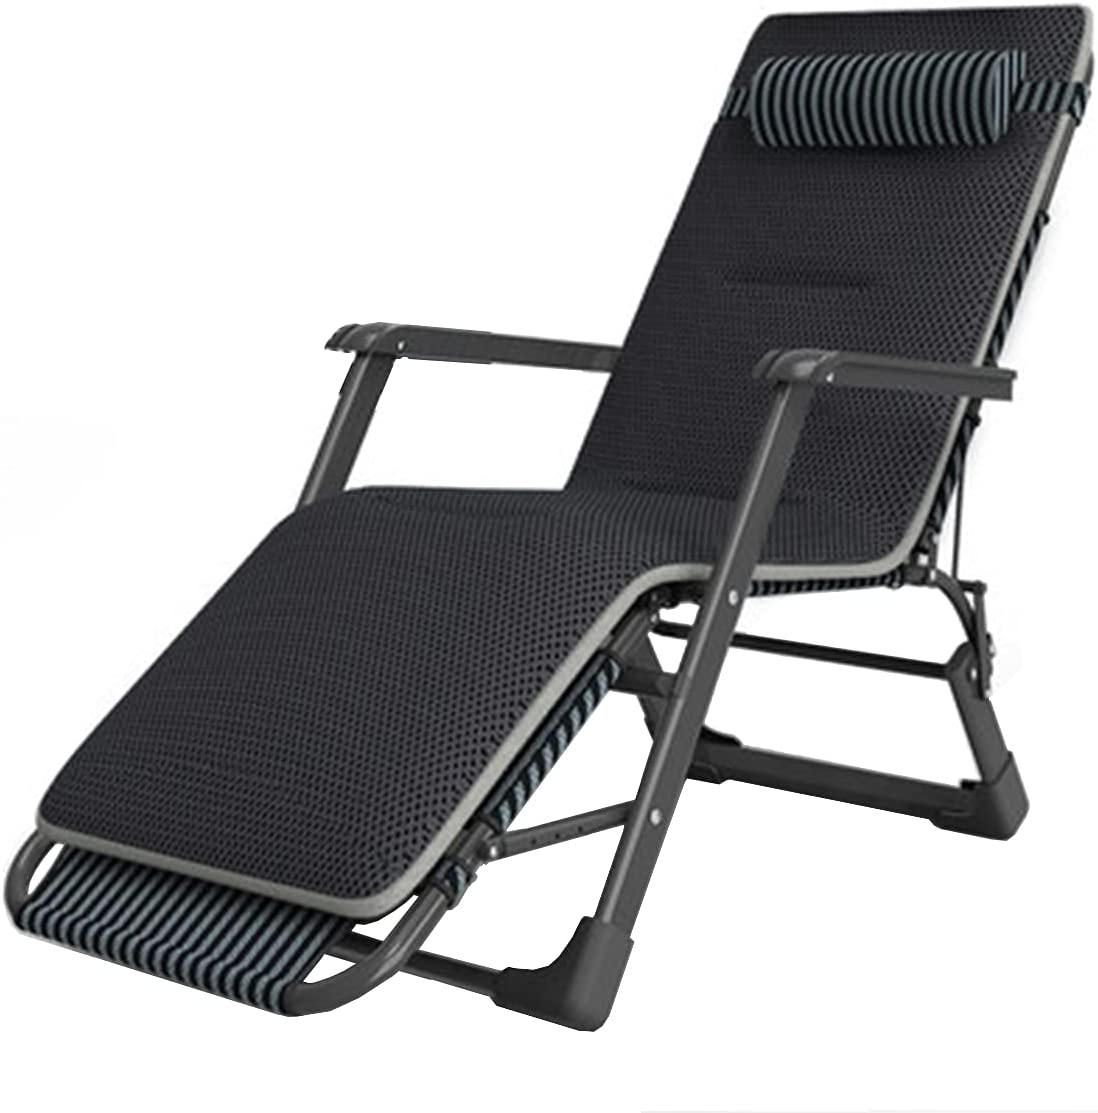 Outdoor 5% OFF Adjustable Folding Lounge Chair Patio Reclining with Max 78% OFF He